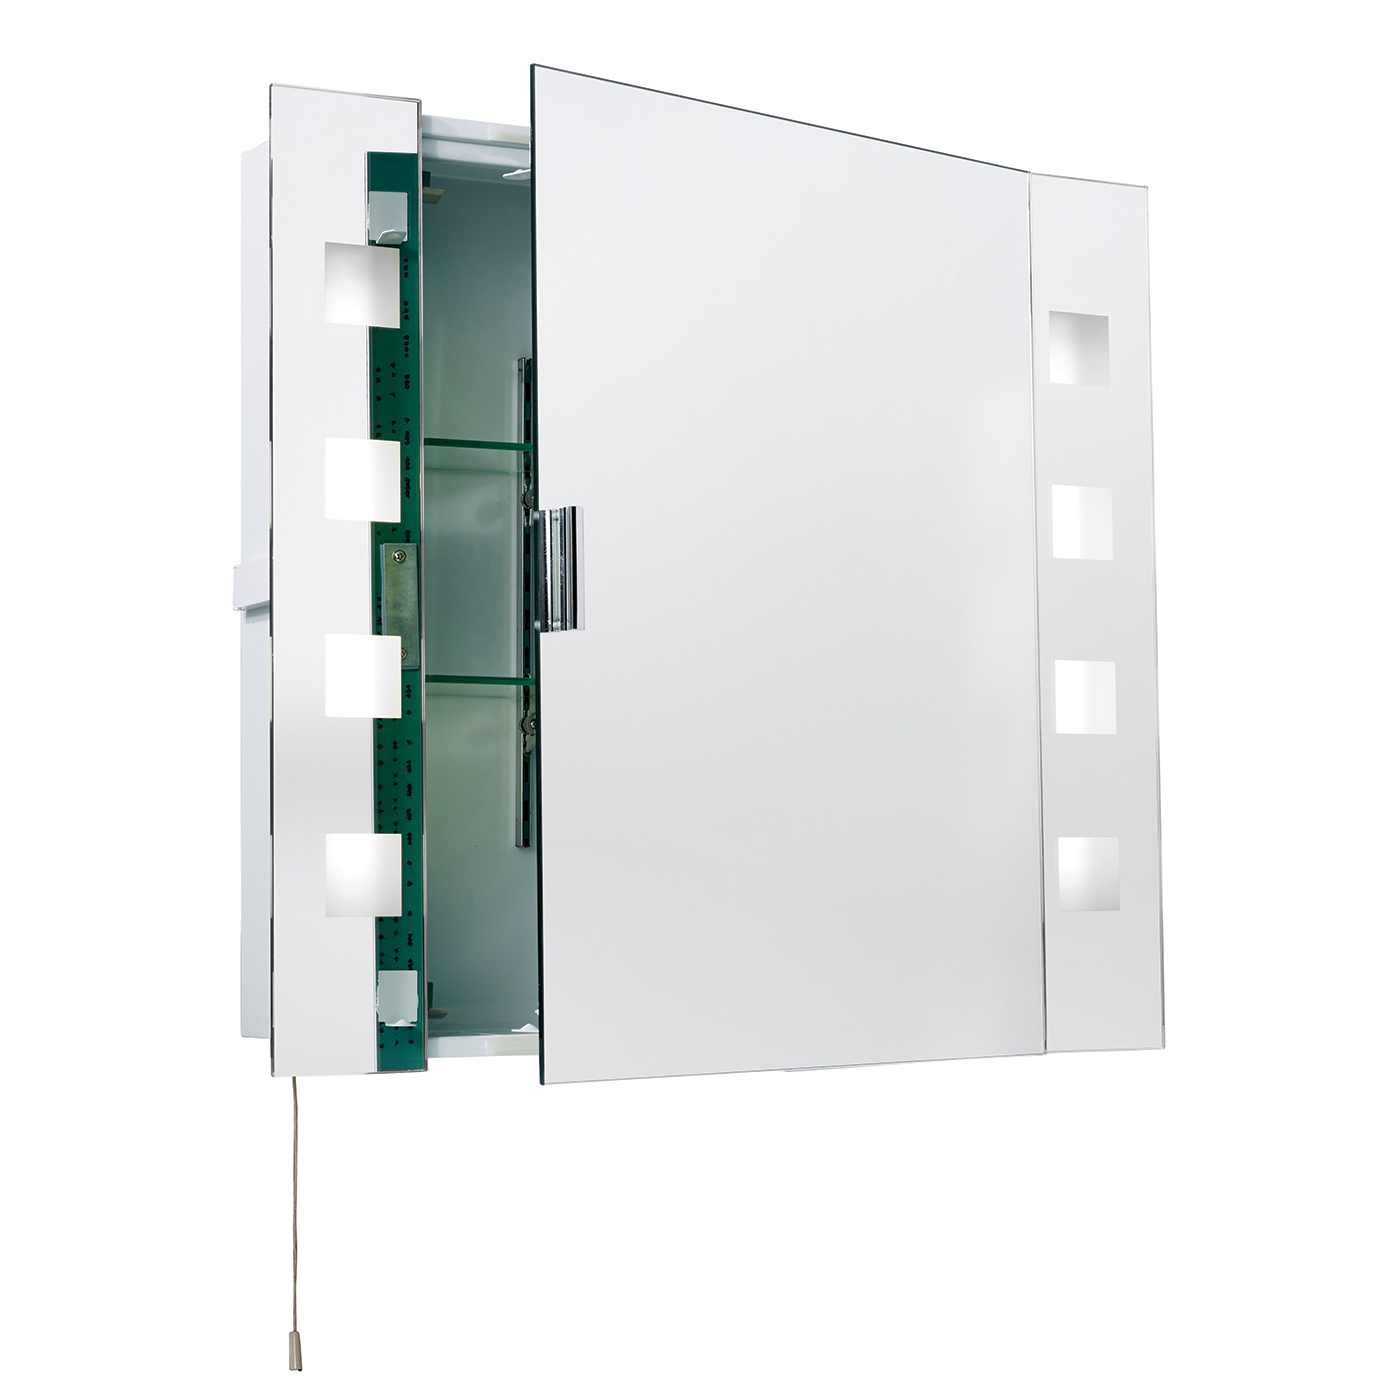 Endon Milos shaver cabinet bathroom mirror IP44 15W pull cord H: 600mm W: 650mm Thumbnail 1